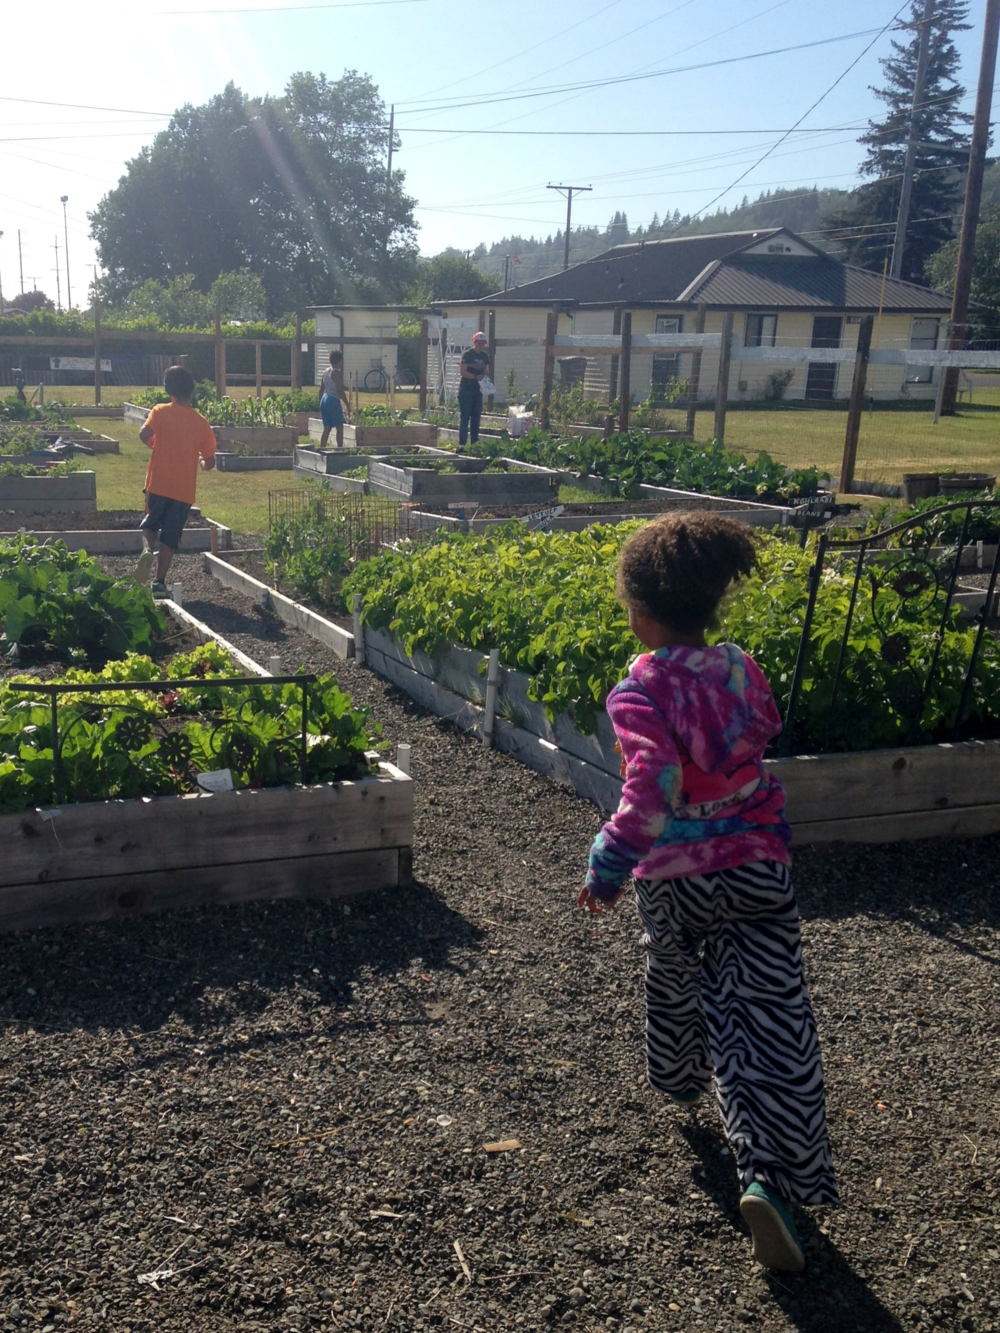 Some of our volunteers eager to help harvest from the garden!